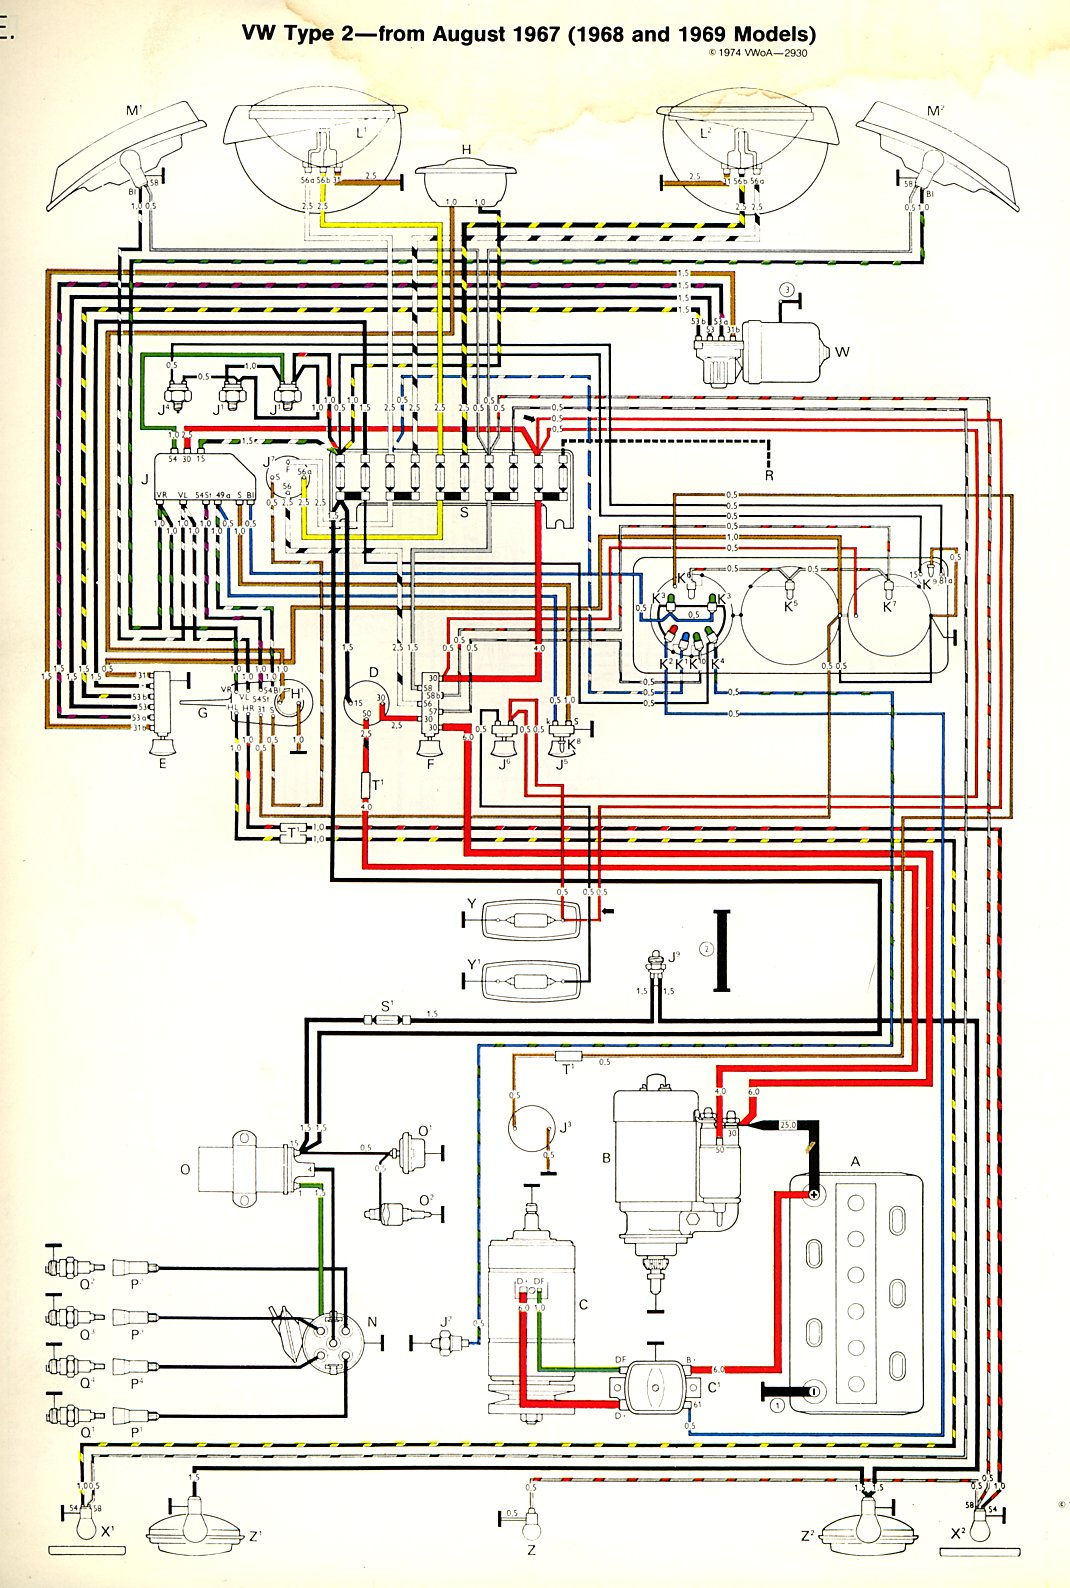 wiring diagram 1970 vw squareback vw squareback fuse wiring split window vw bus fuse box | wiring library